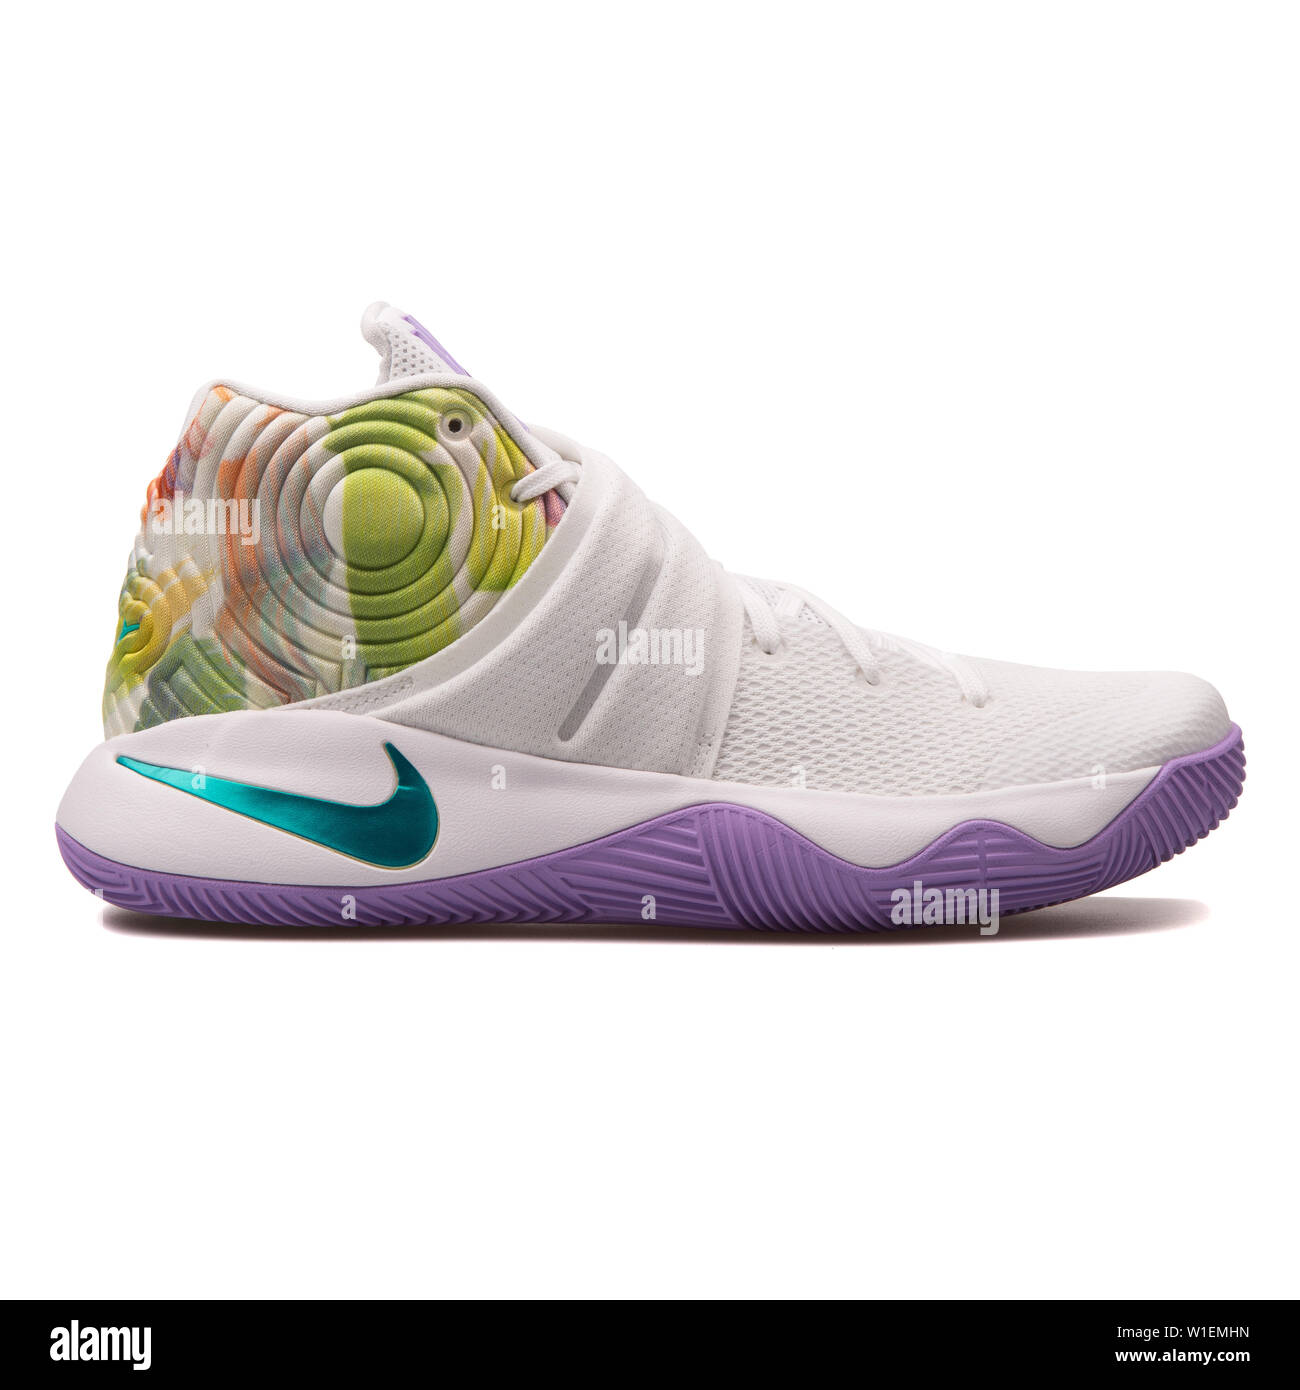 best loved 2d871 d4cc7 VIENNA, AUSTRIA - AUGUST 30, 2017: Nike Kyrie 2 white and ...